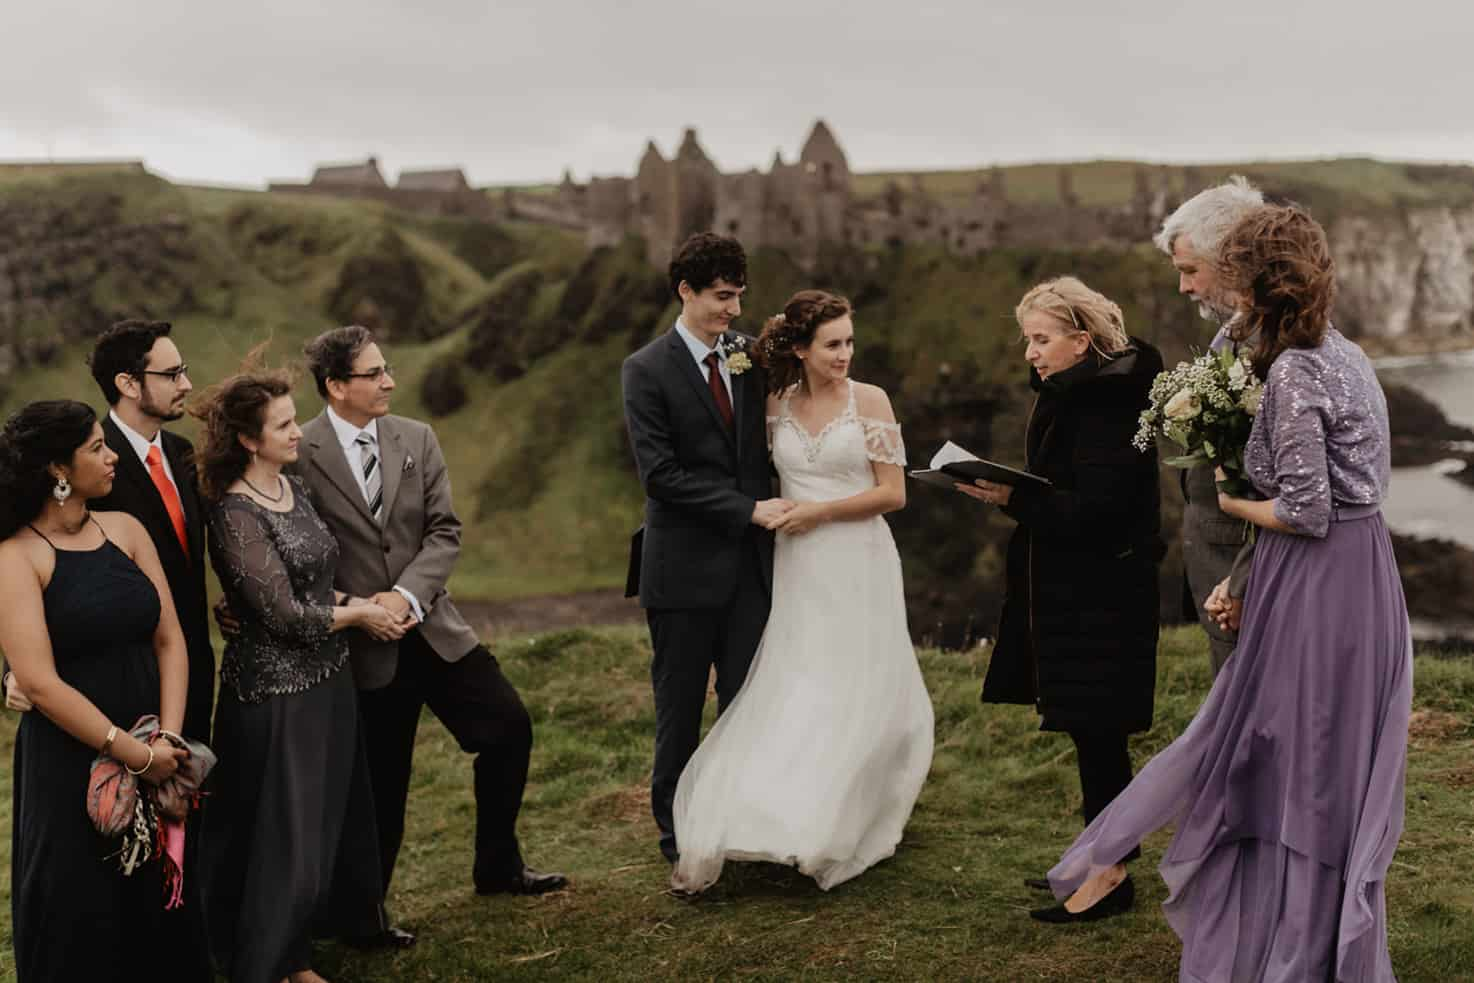 A guide to Intimate weddings and Elopements in Ireland 2020